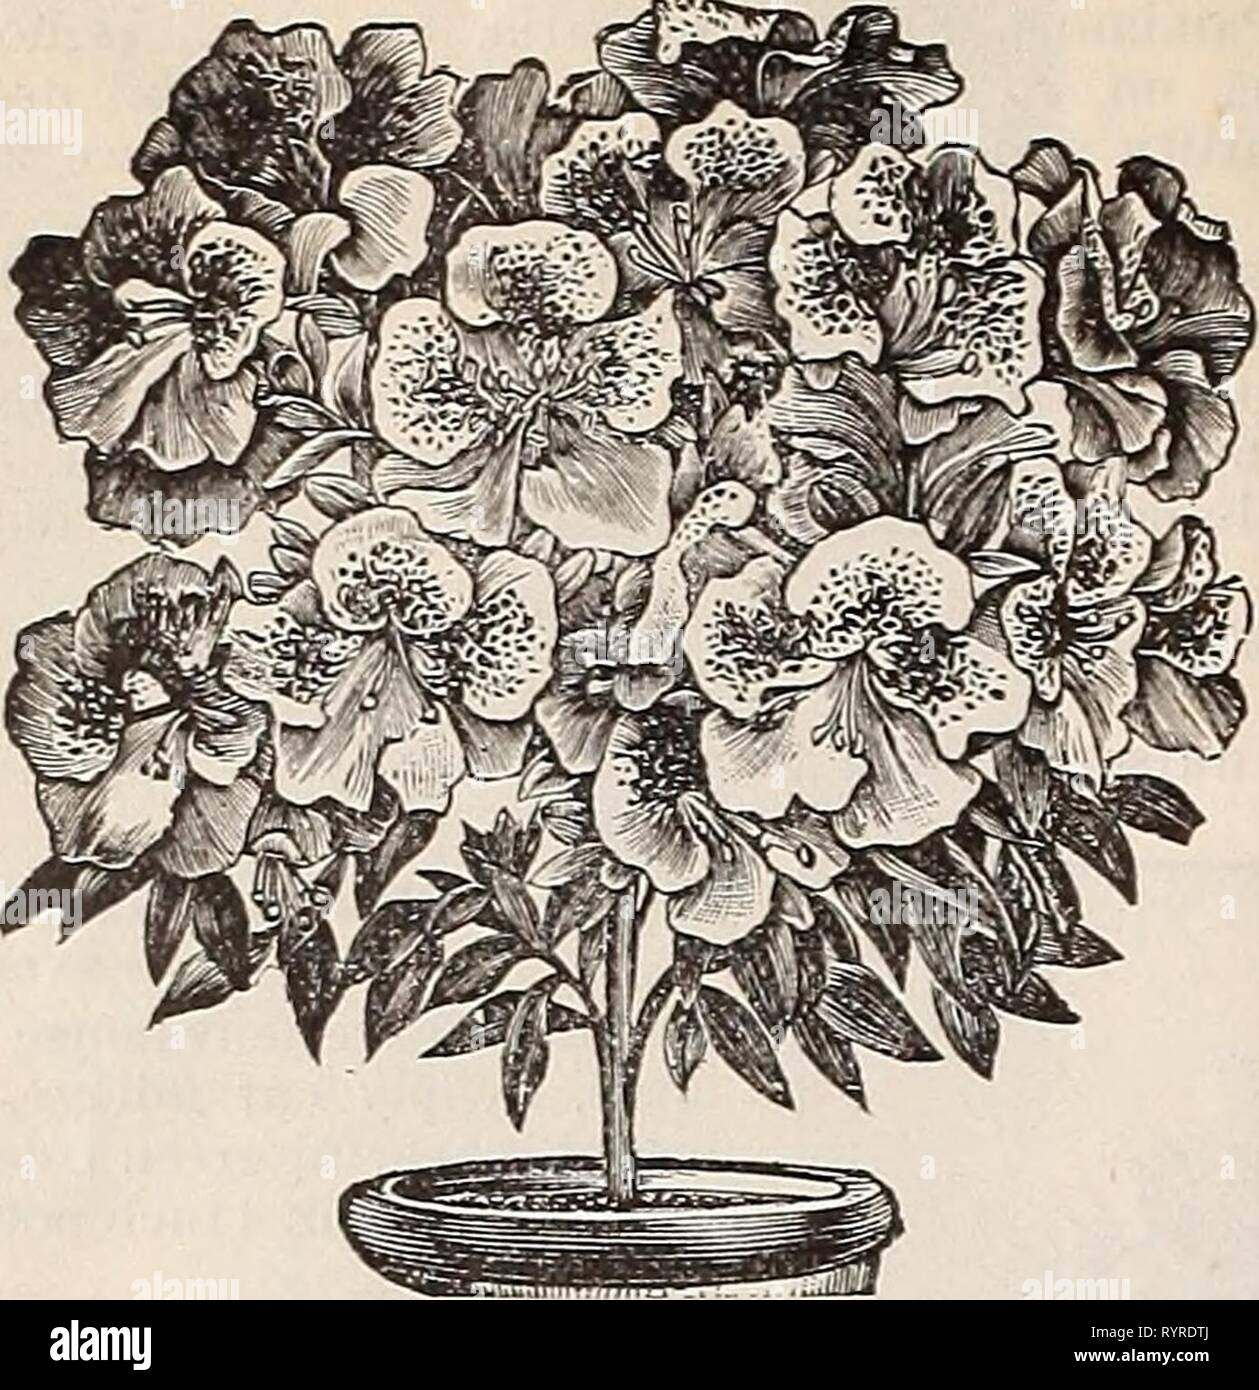 Dreer's quarterly wholesale price list Dreer's quarterly wholesale price list of seeds, plants, bulbs, &c. : summer edition, July 1896 August . dreersquarterlyw1896henr_2 Year: 1896  16 DREER'S WHOLESALE PRICE LIST    Azalea. Import Orders for Azaleas. We are uow bookiug o r - ders for fall d elivery. Buyers who use a quan- tity of this most popular Easter bloom- ing plant, will find it to their interesi to place their orders for next season's wants early, thereby s e - curing the choice of the stock at low- est cost lor transpor- tatiou, as the planis can be forwnrded with perfect safety duri - Stock Image